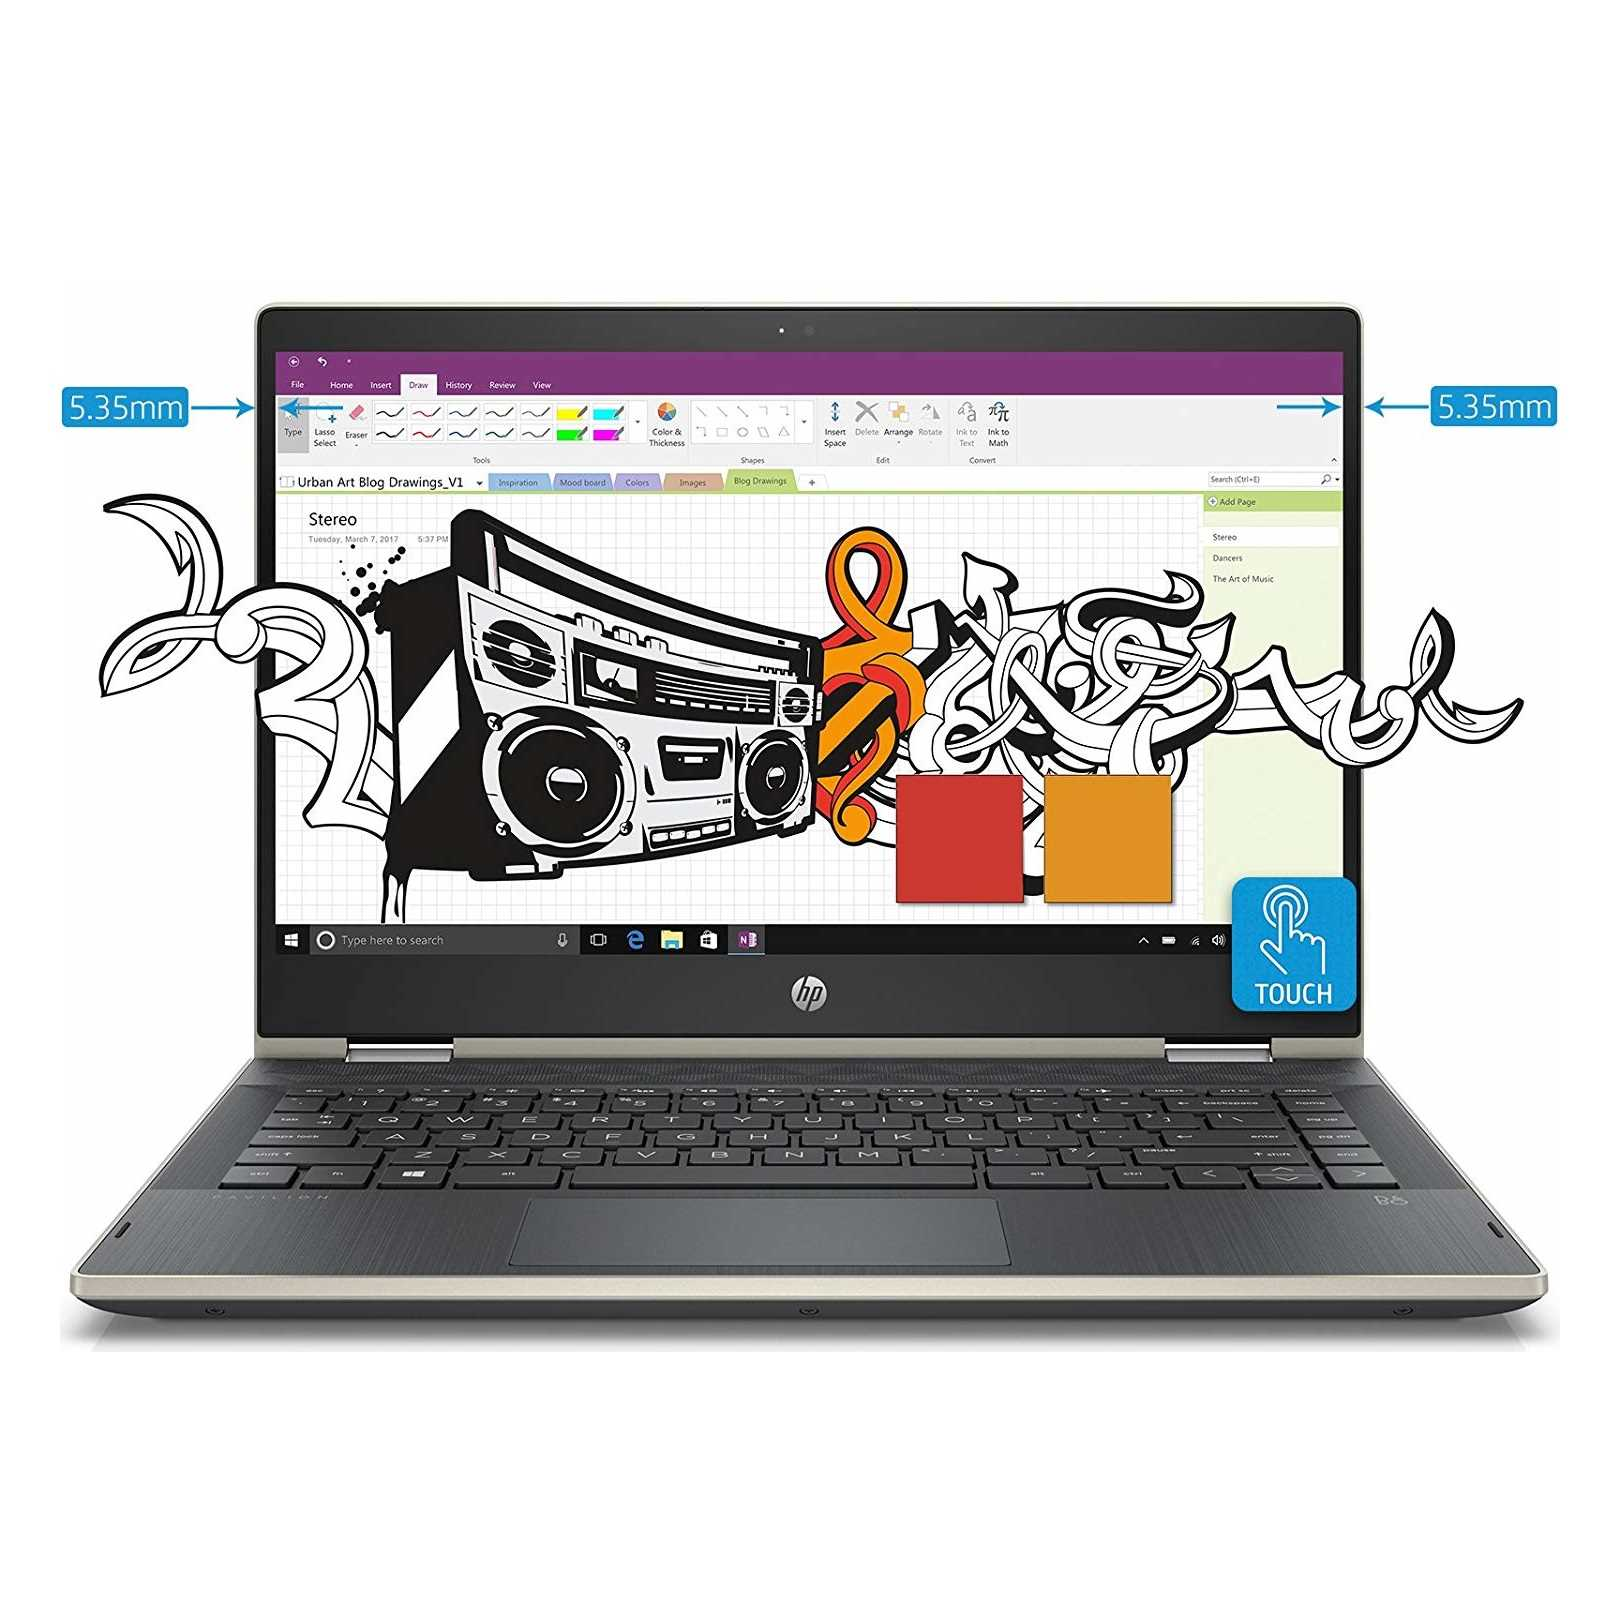 HP Pavilion X360 14-CD0081TU Laptop